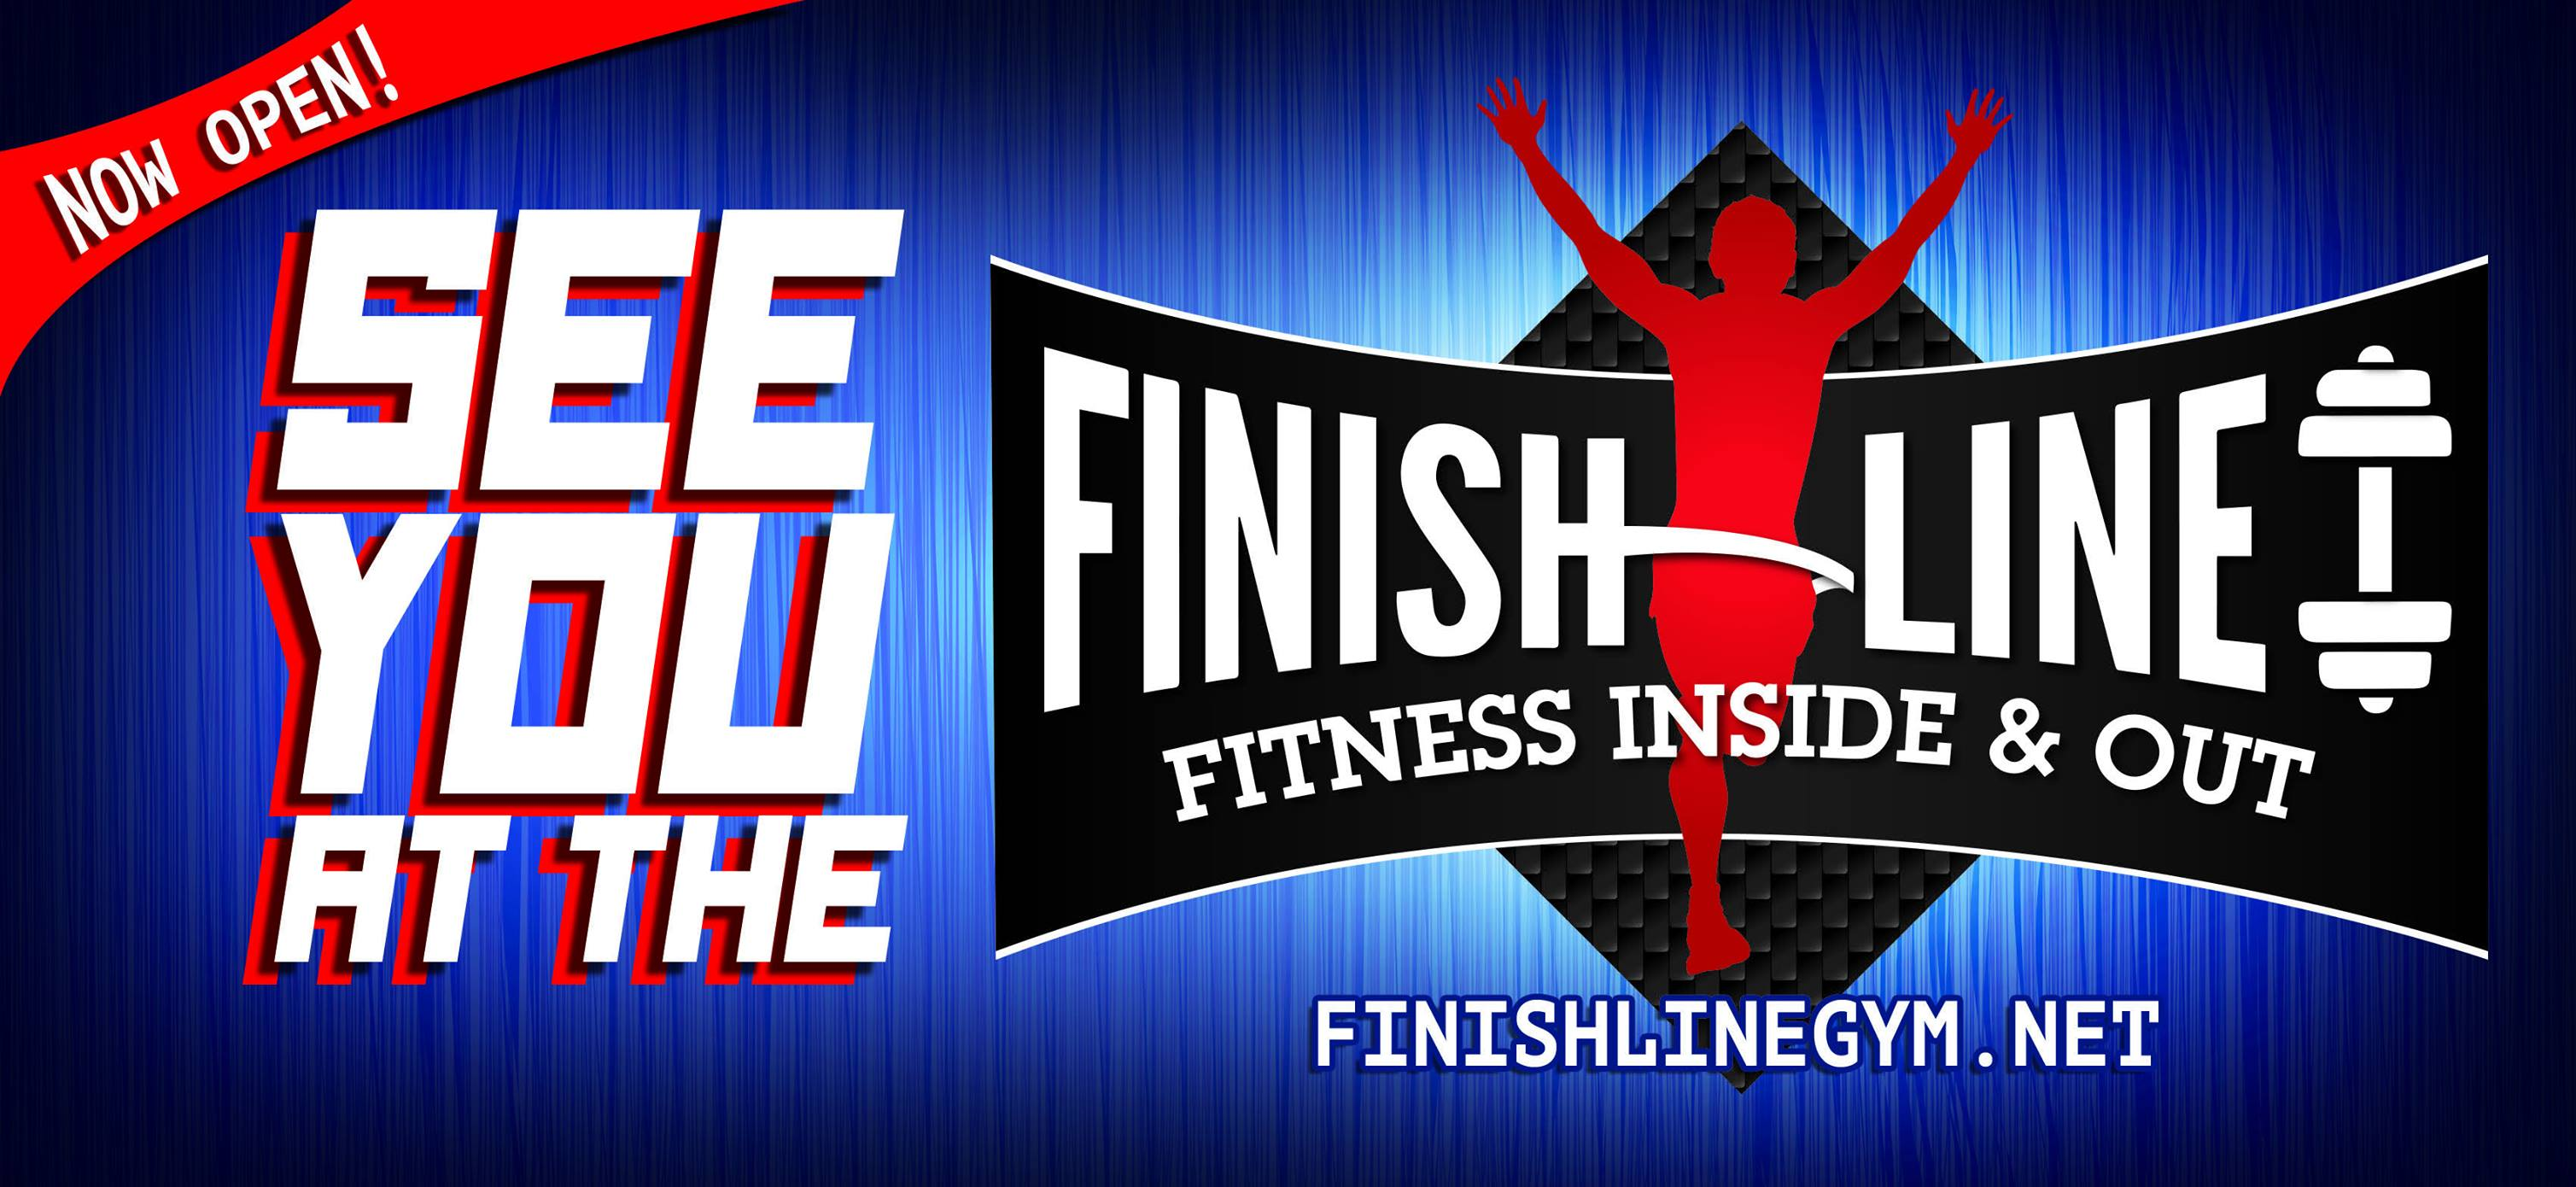 Finish Line Fitness Cener